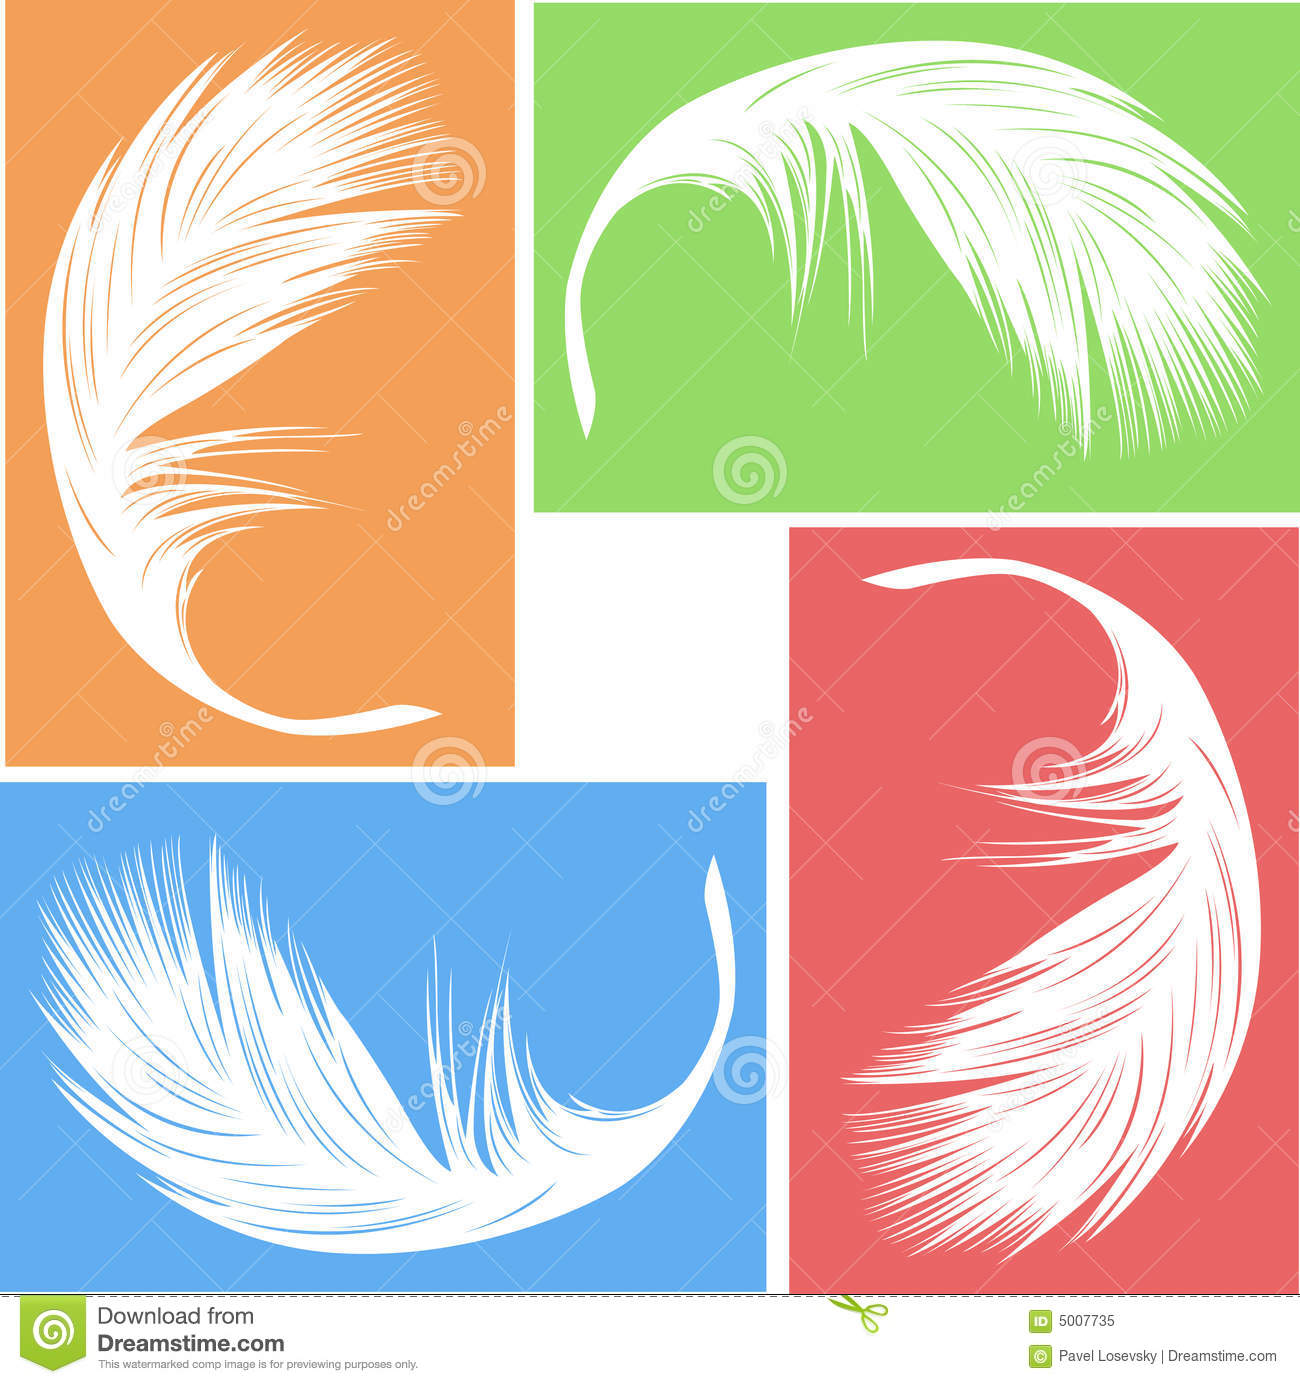 Feather Vector Royalty Free Stock Photo - Image: 5007735